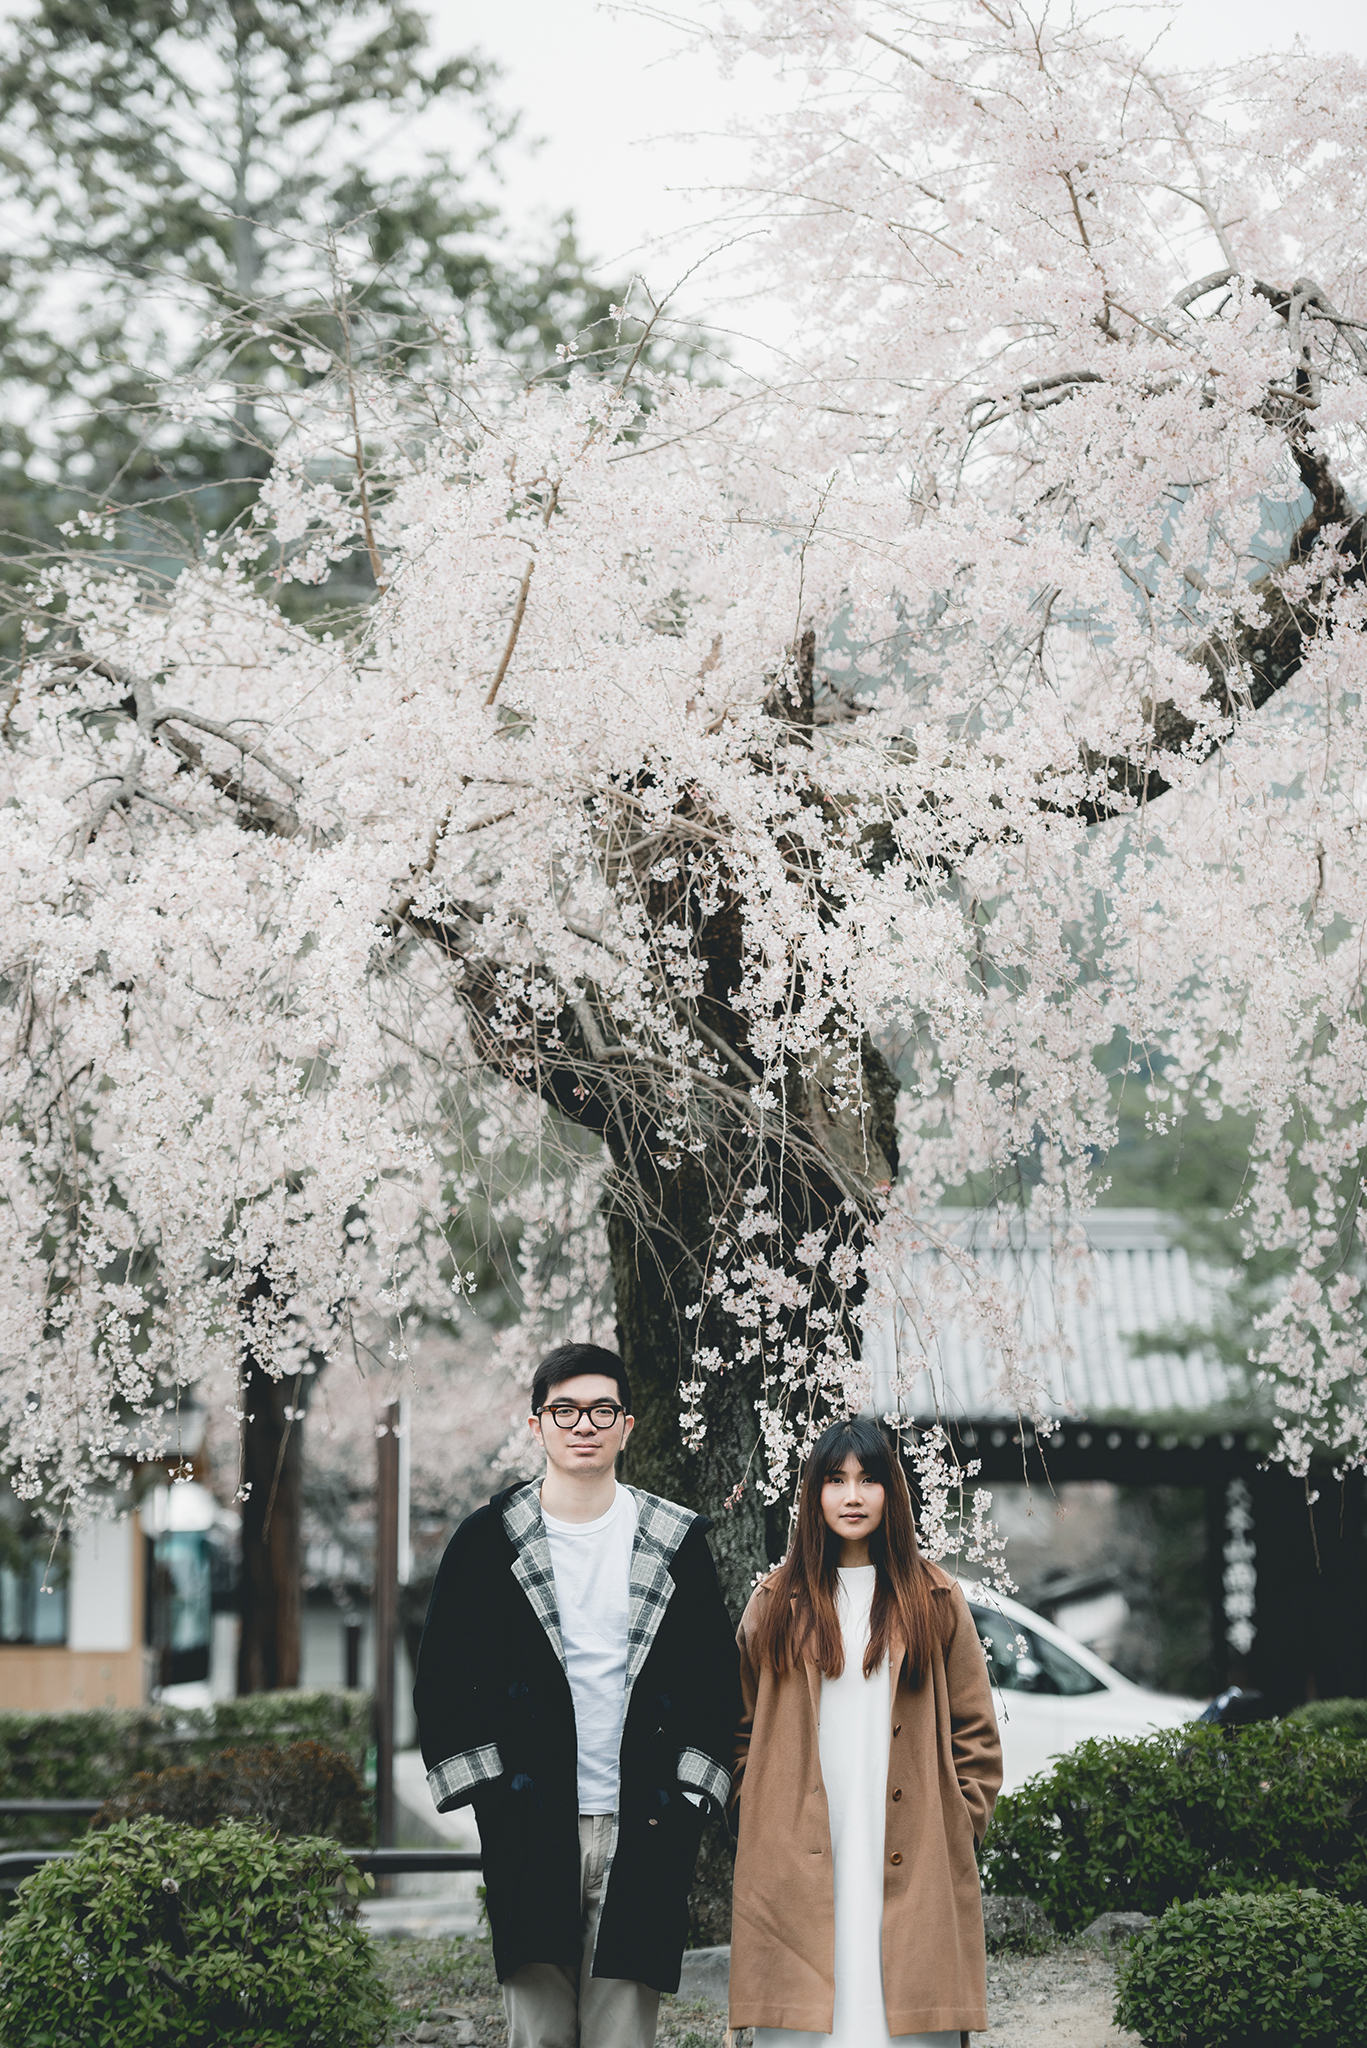 Prewedding Kyoto Keage Incline 00015.JPG